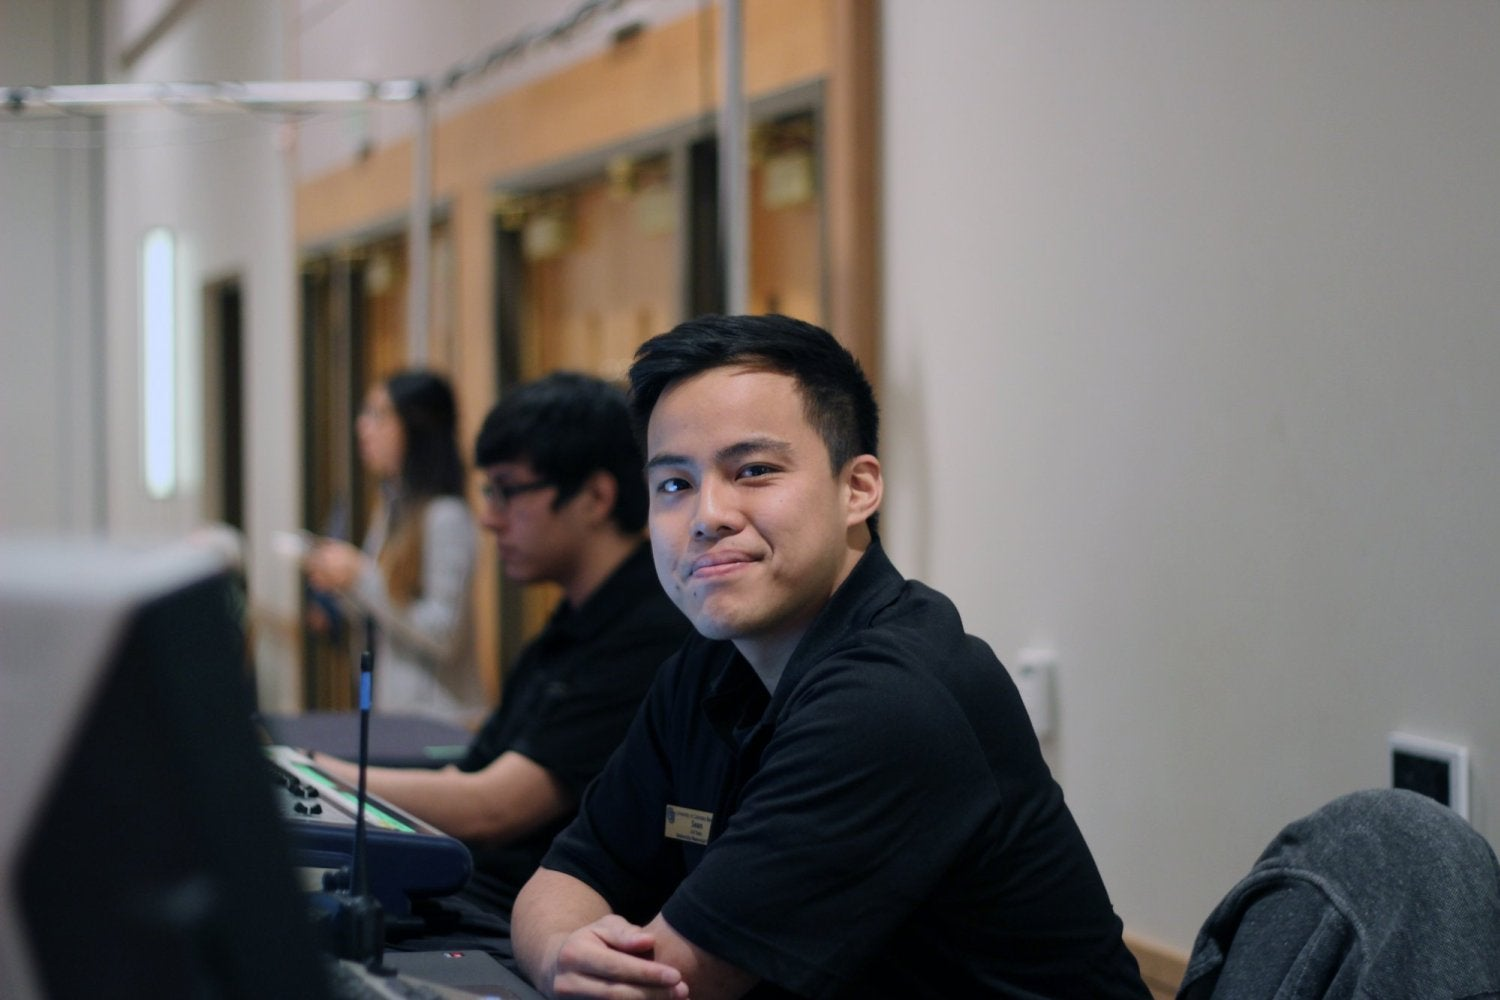 A student employee on the UMC audio visual team